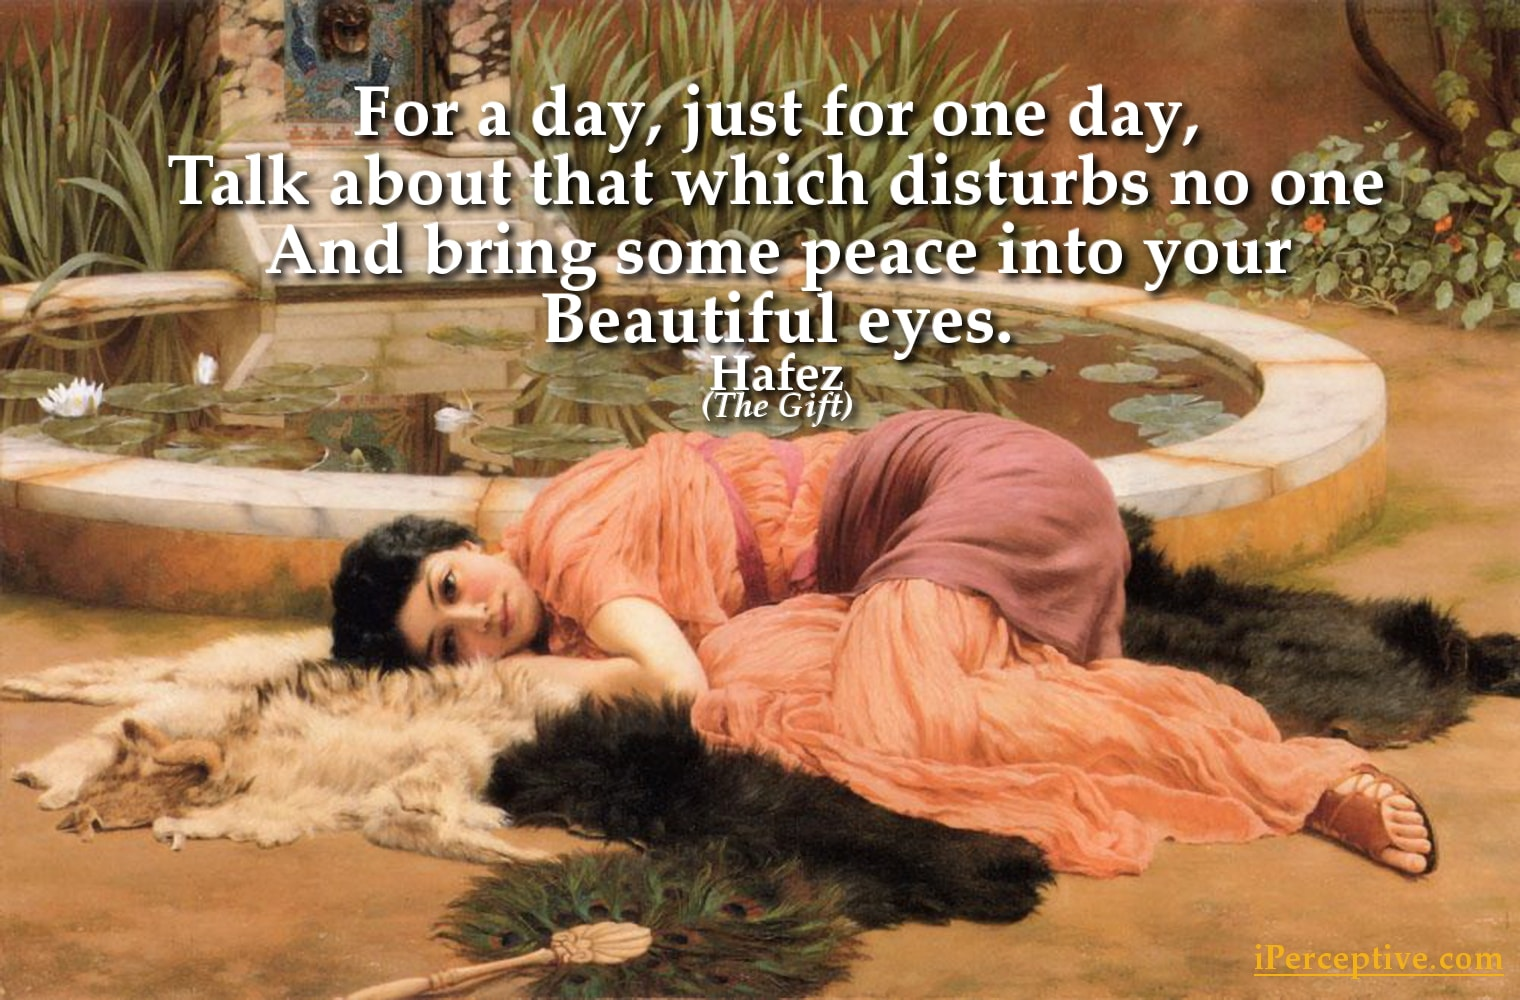 Hafez Quote: or a day, just for one day, Talk about that which disturbs no one And bring some peace into your... ...